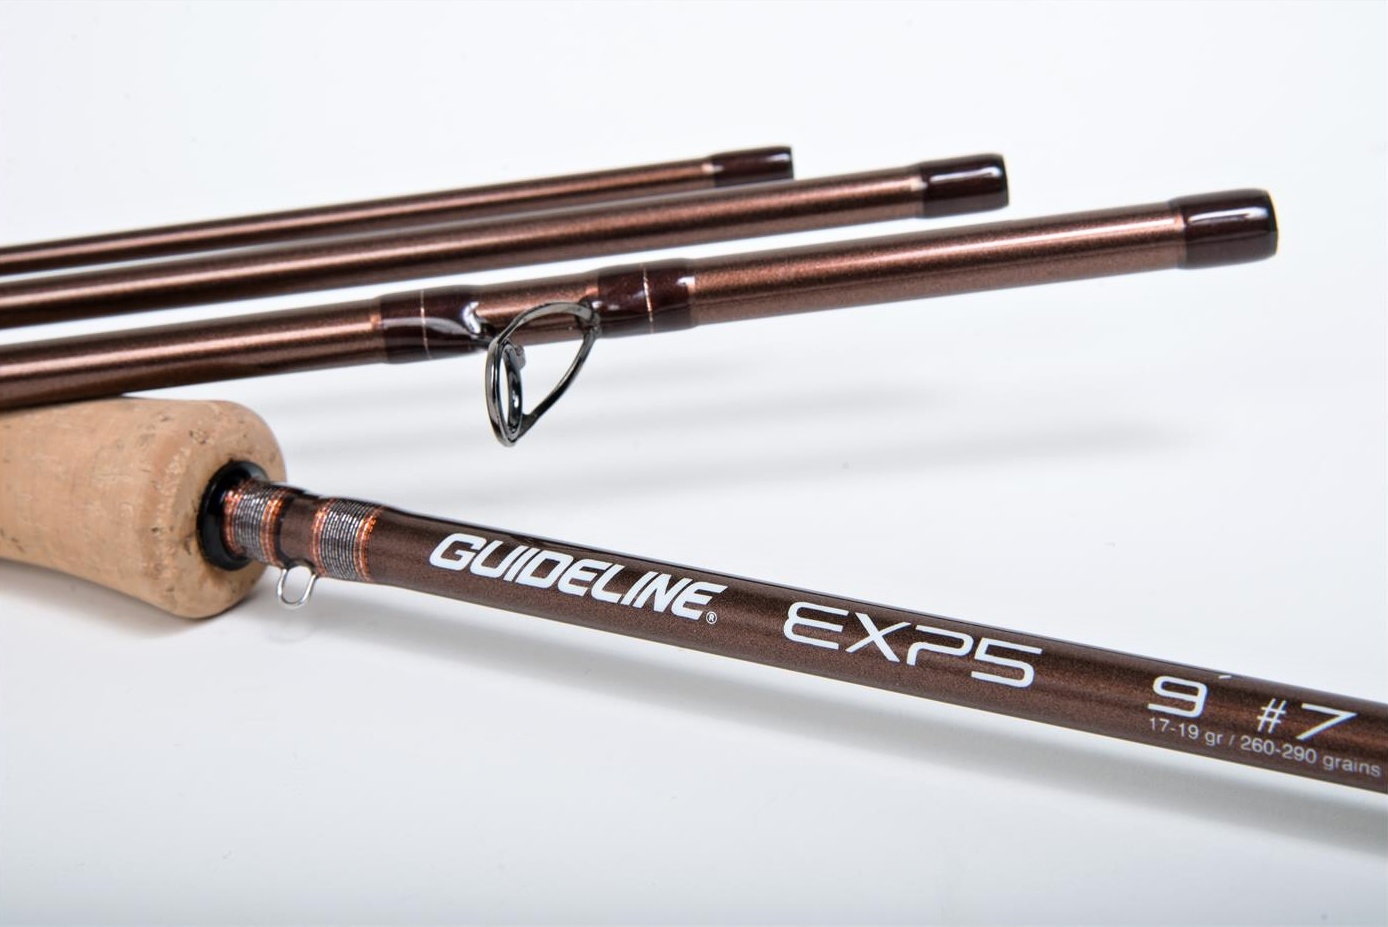 Fly Rod Guideline EXP5 - Logo